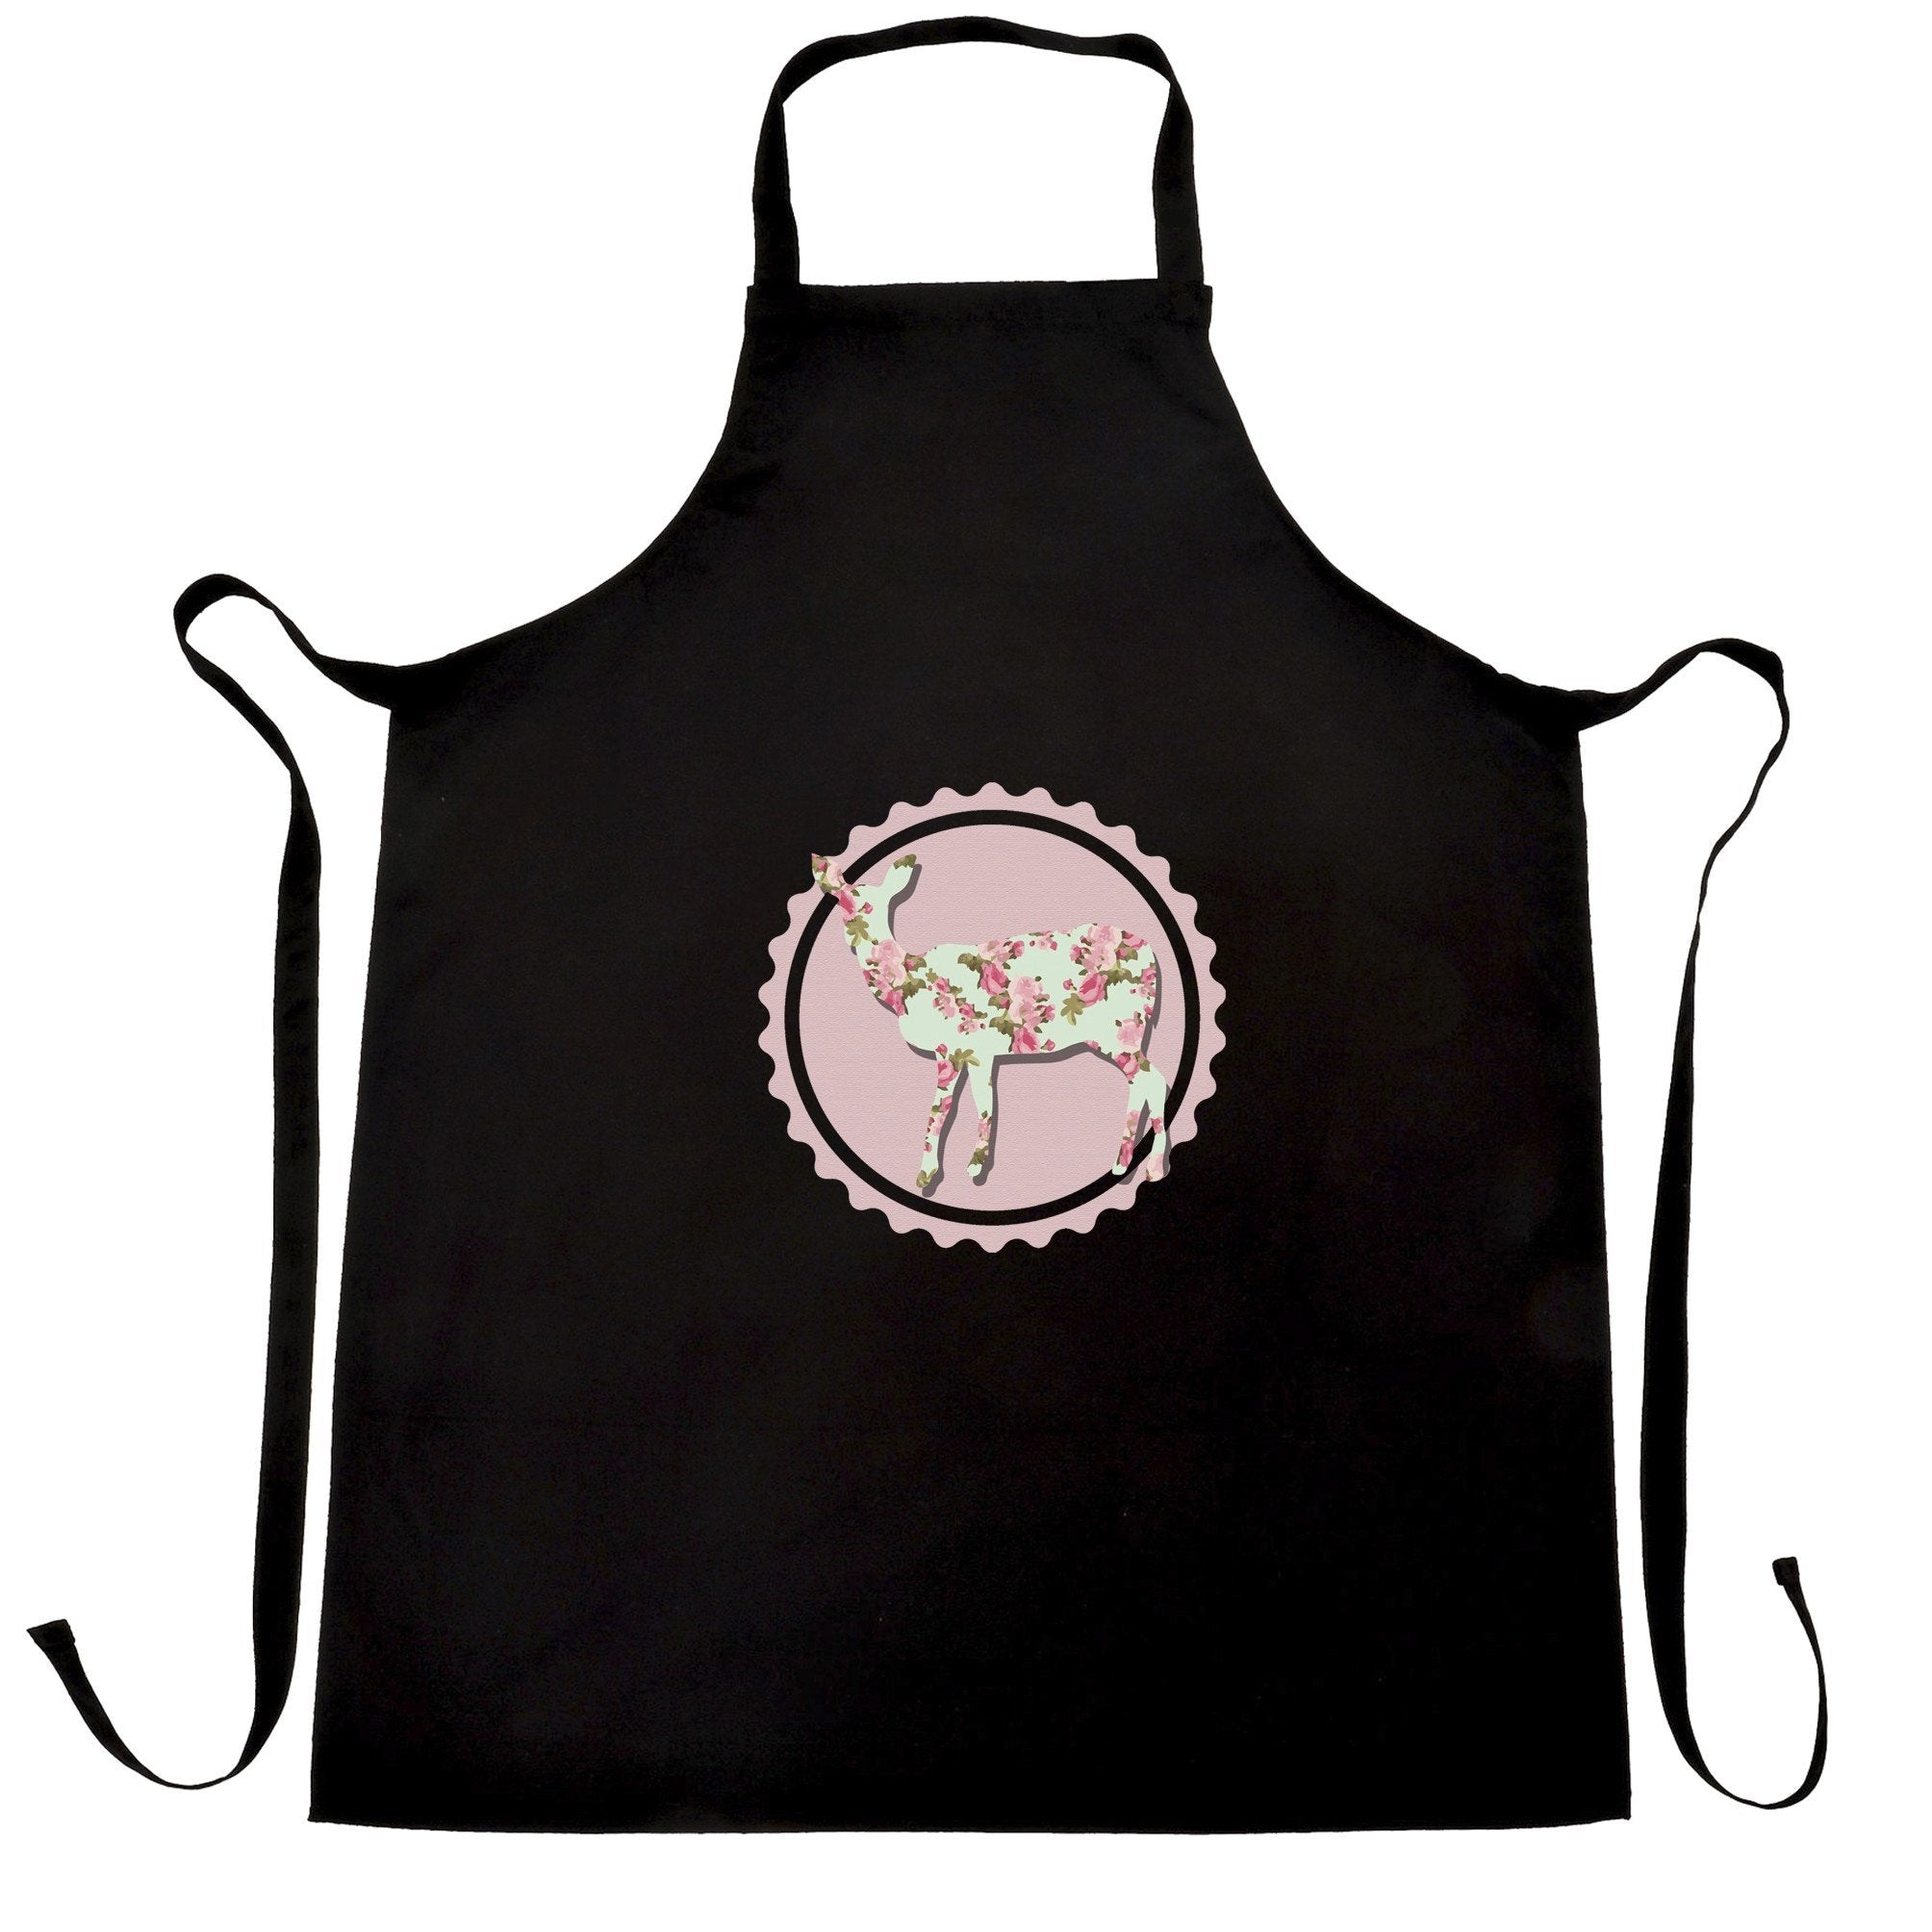 Vintage Logo Chef's Apron Floral Patterned Deer Badge